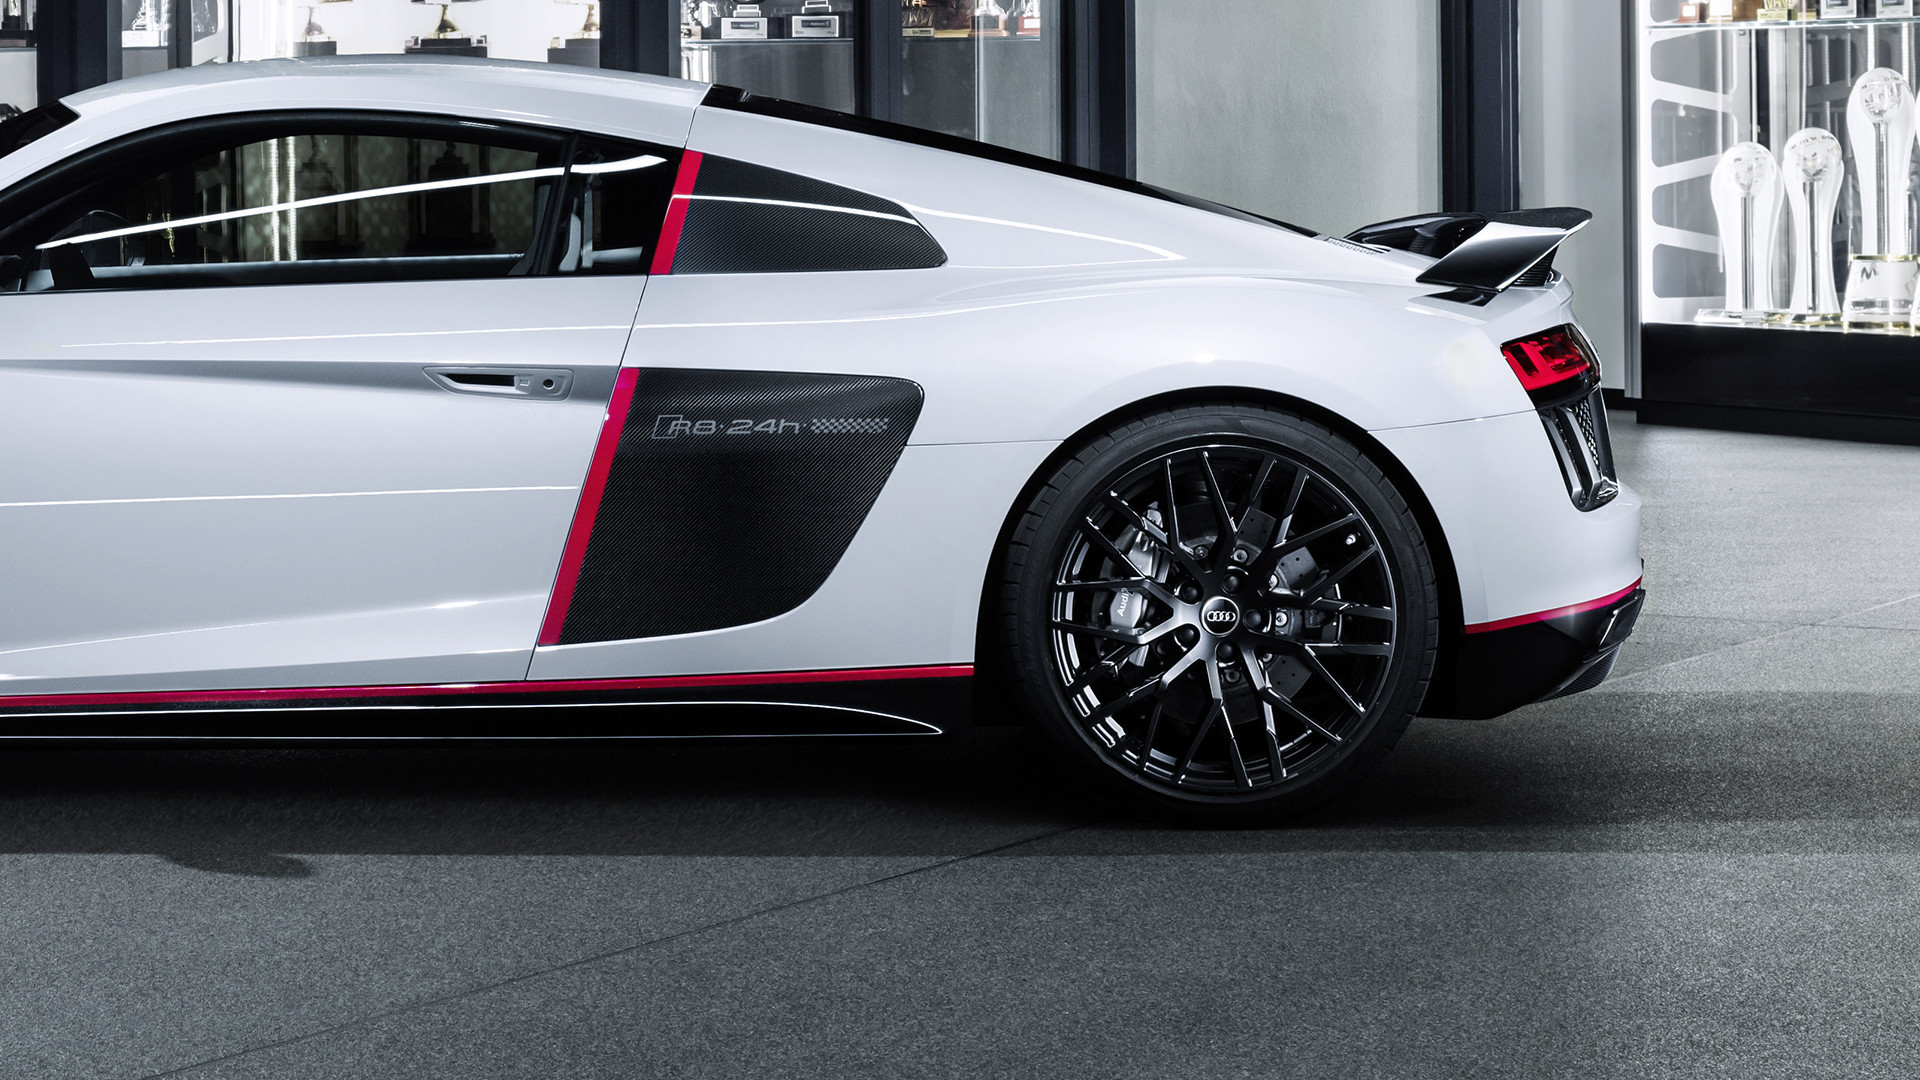 Audi R8 V10 selection 24h - 2016 - wheel / jante